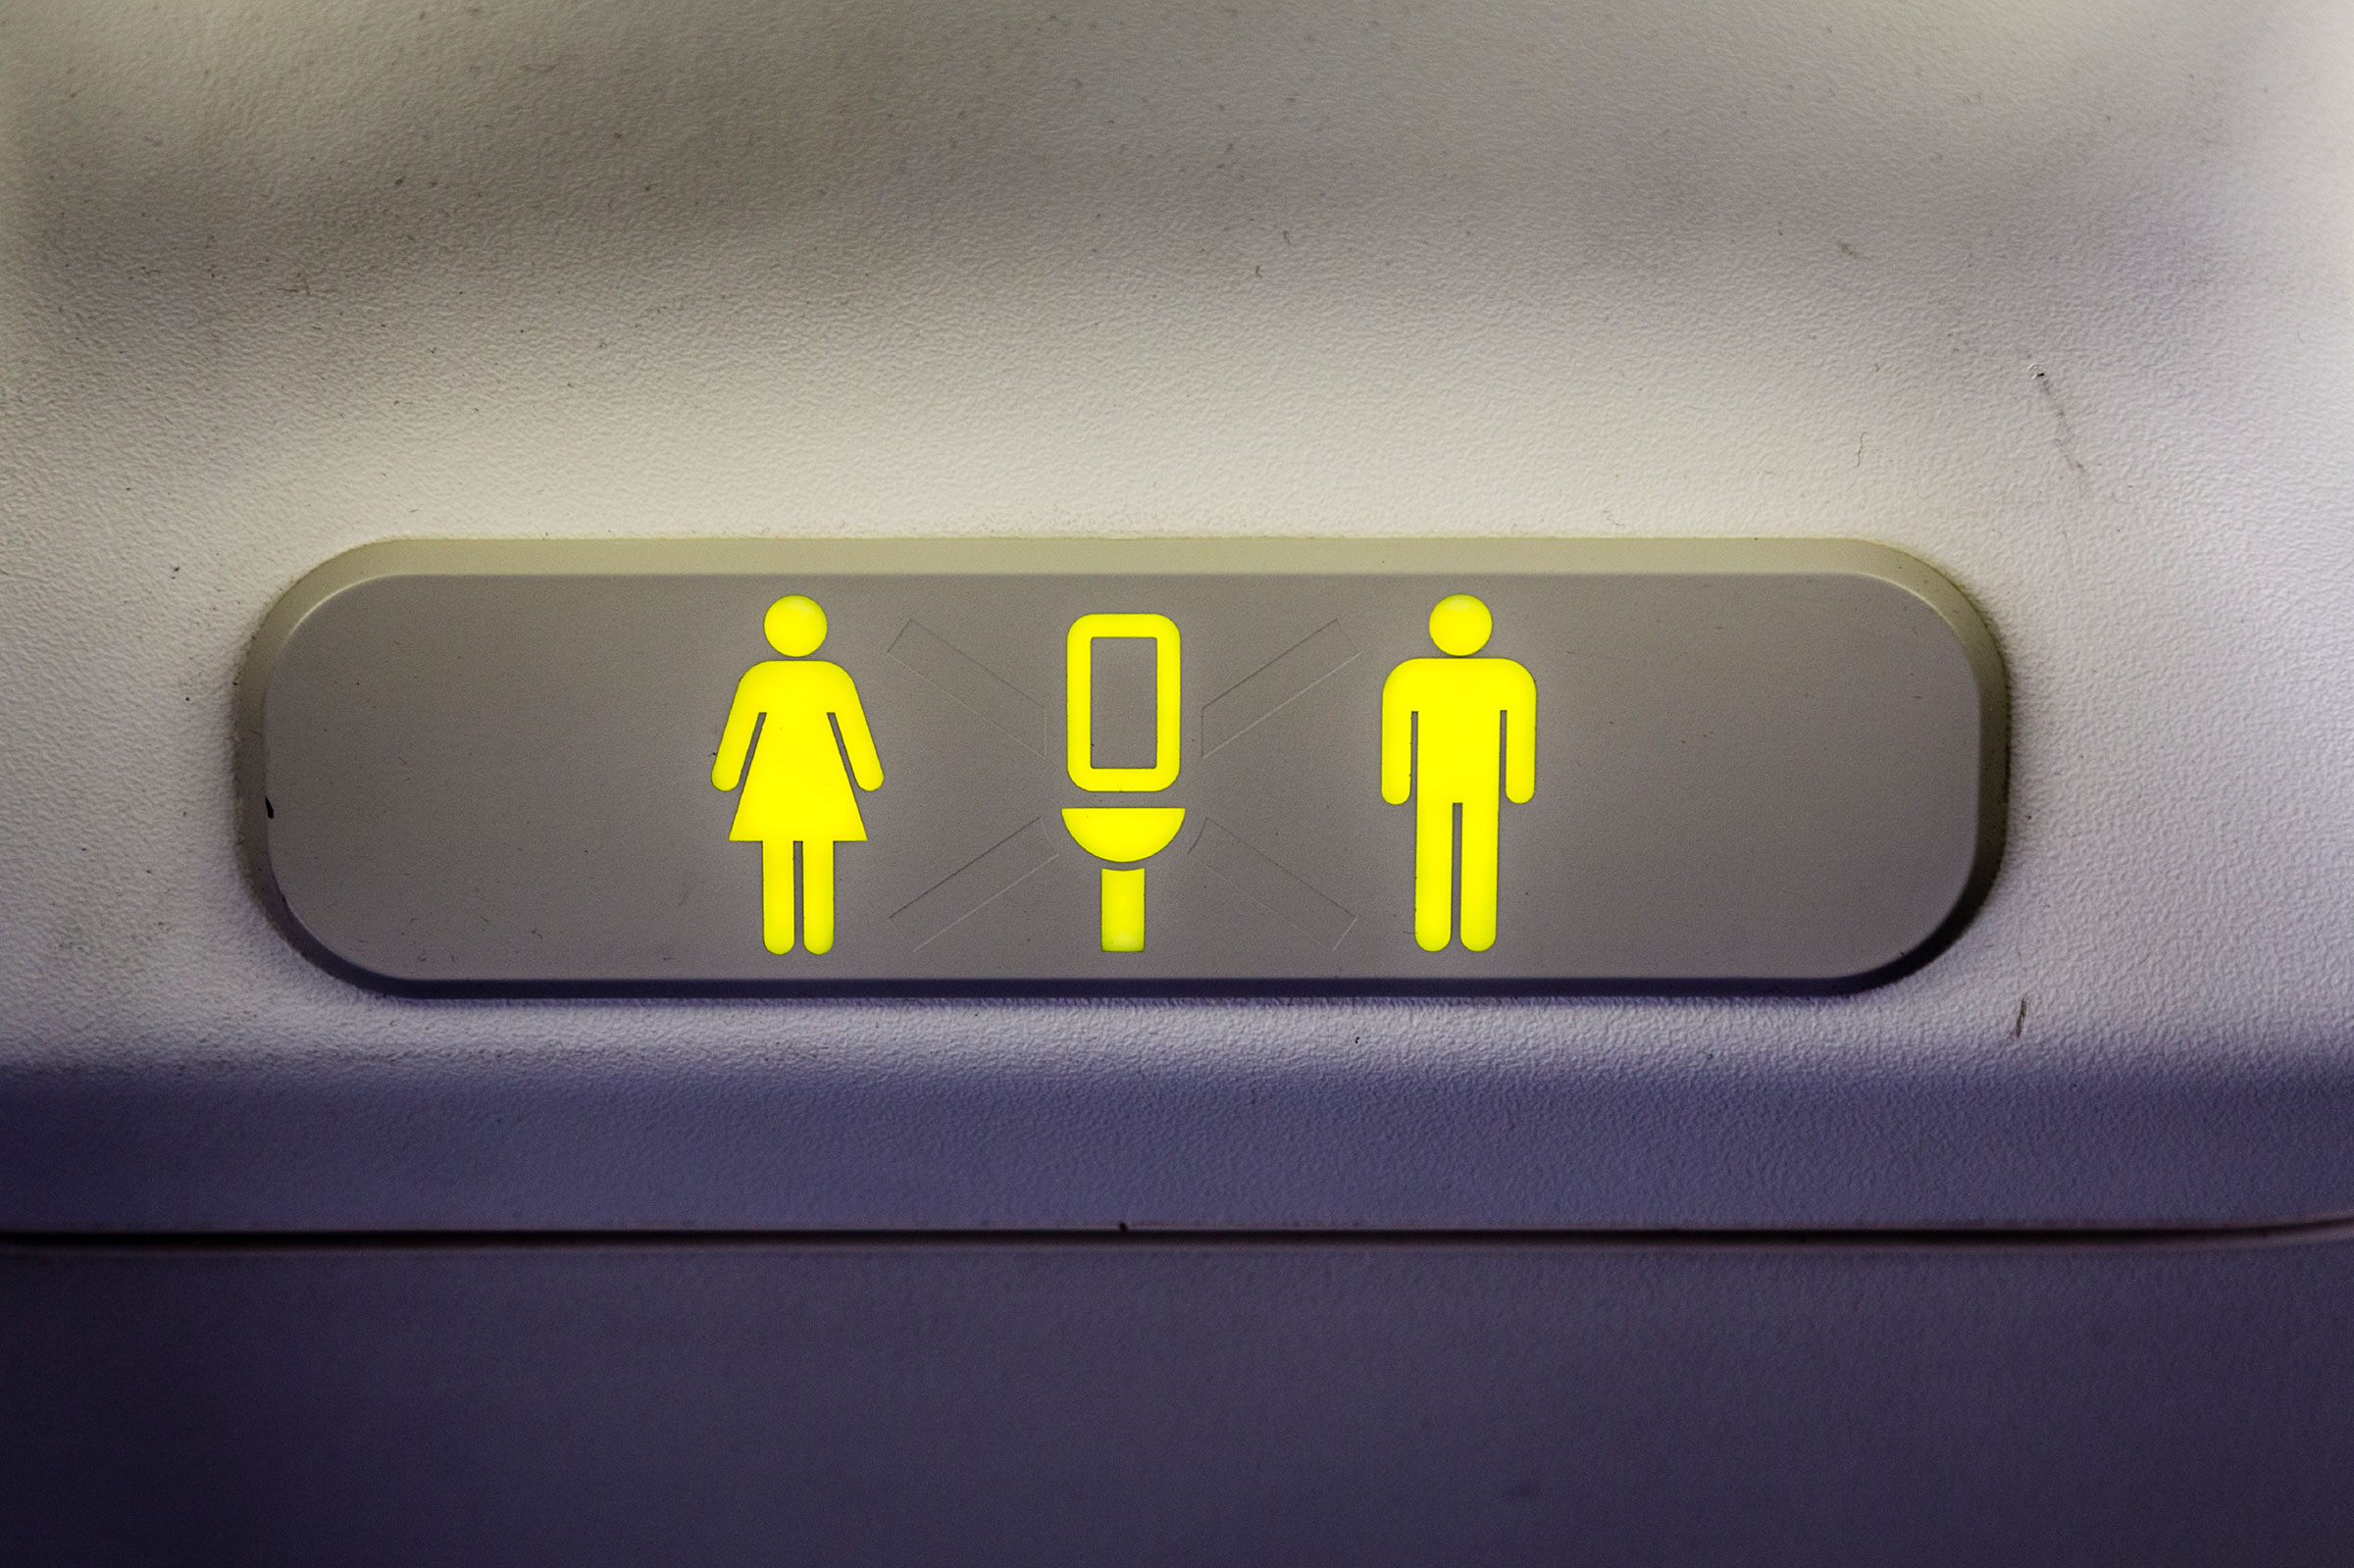 Faulty toilet forces plane full of plumbers to turn around